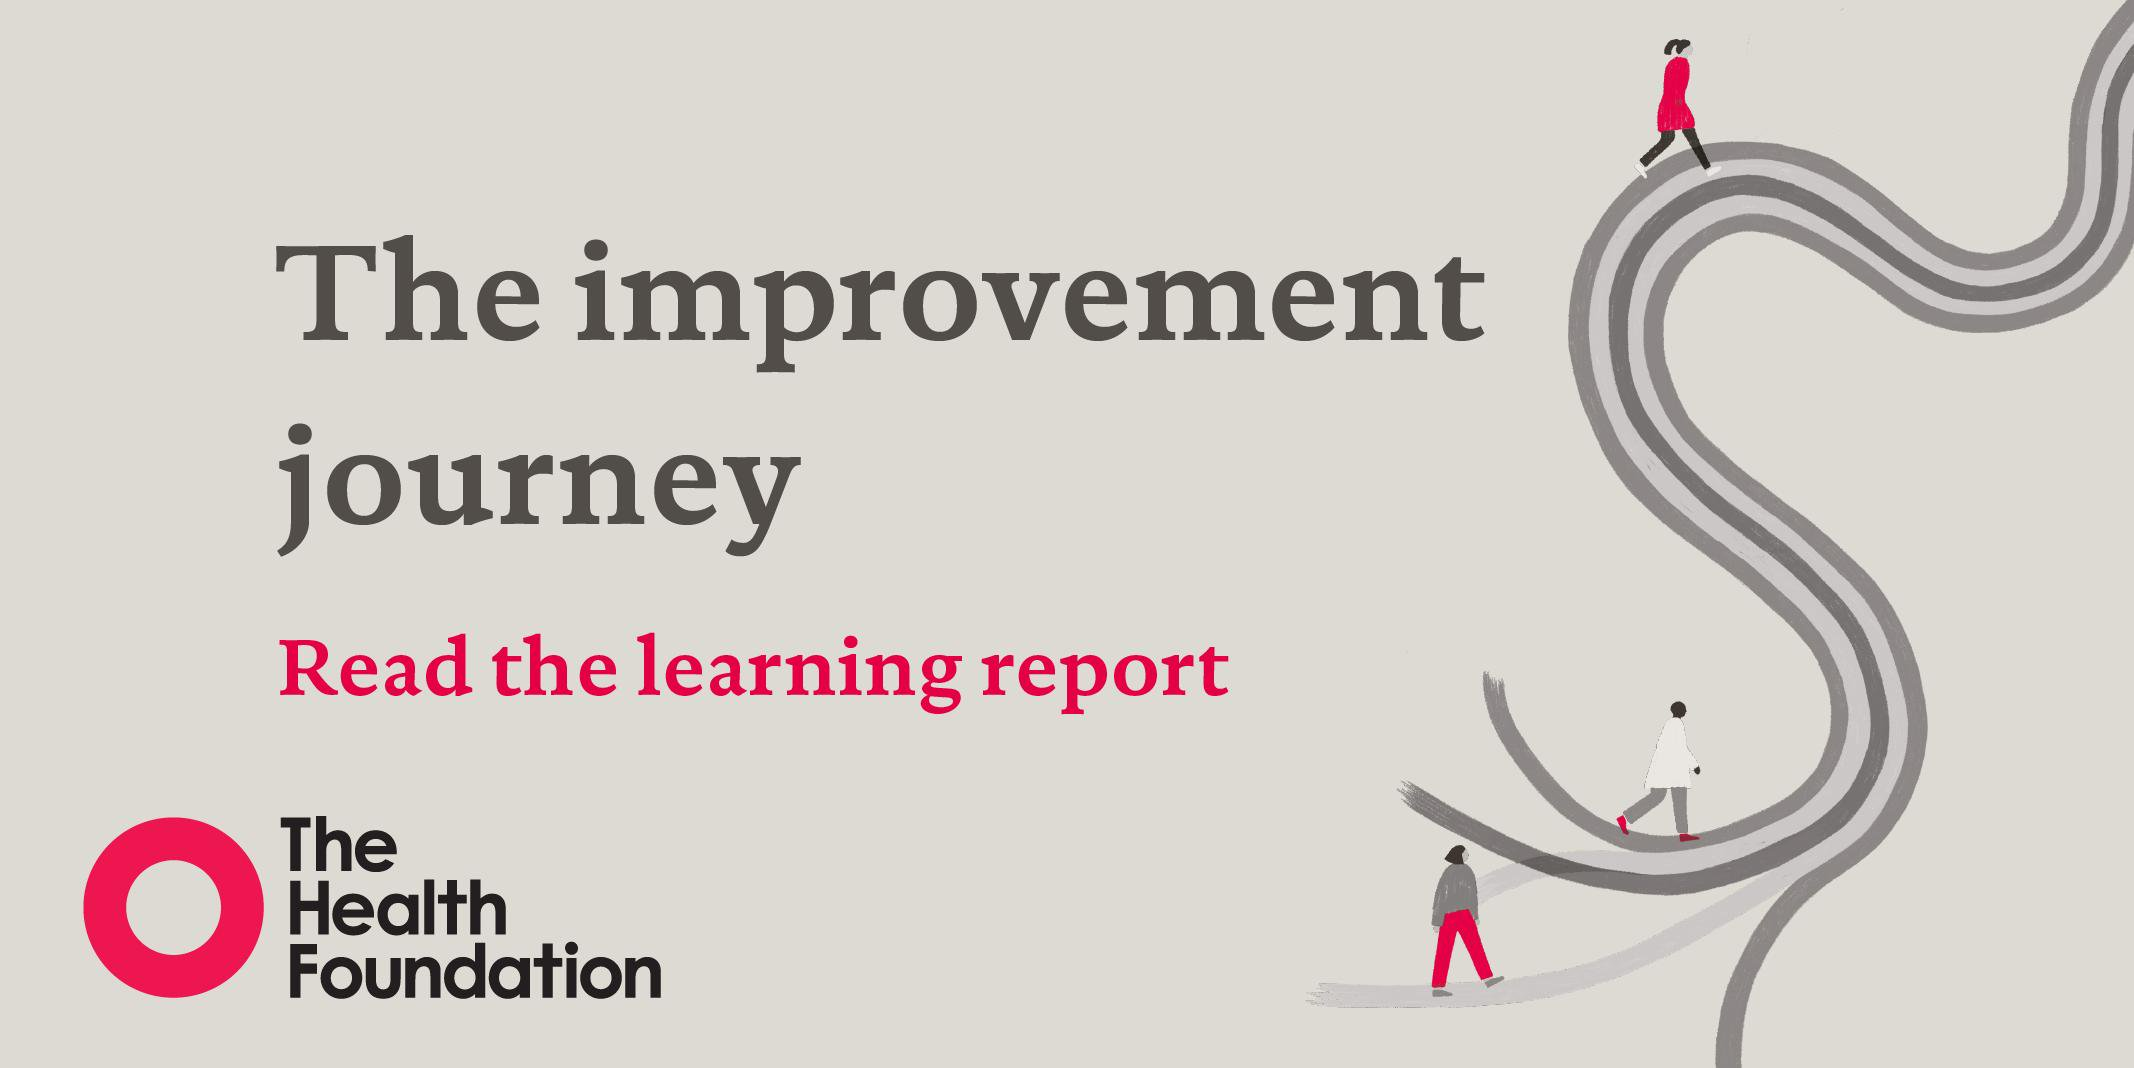 The Health Foundation Article - The Improvement Journey